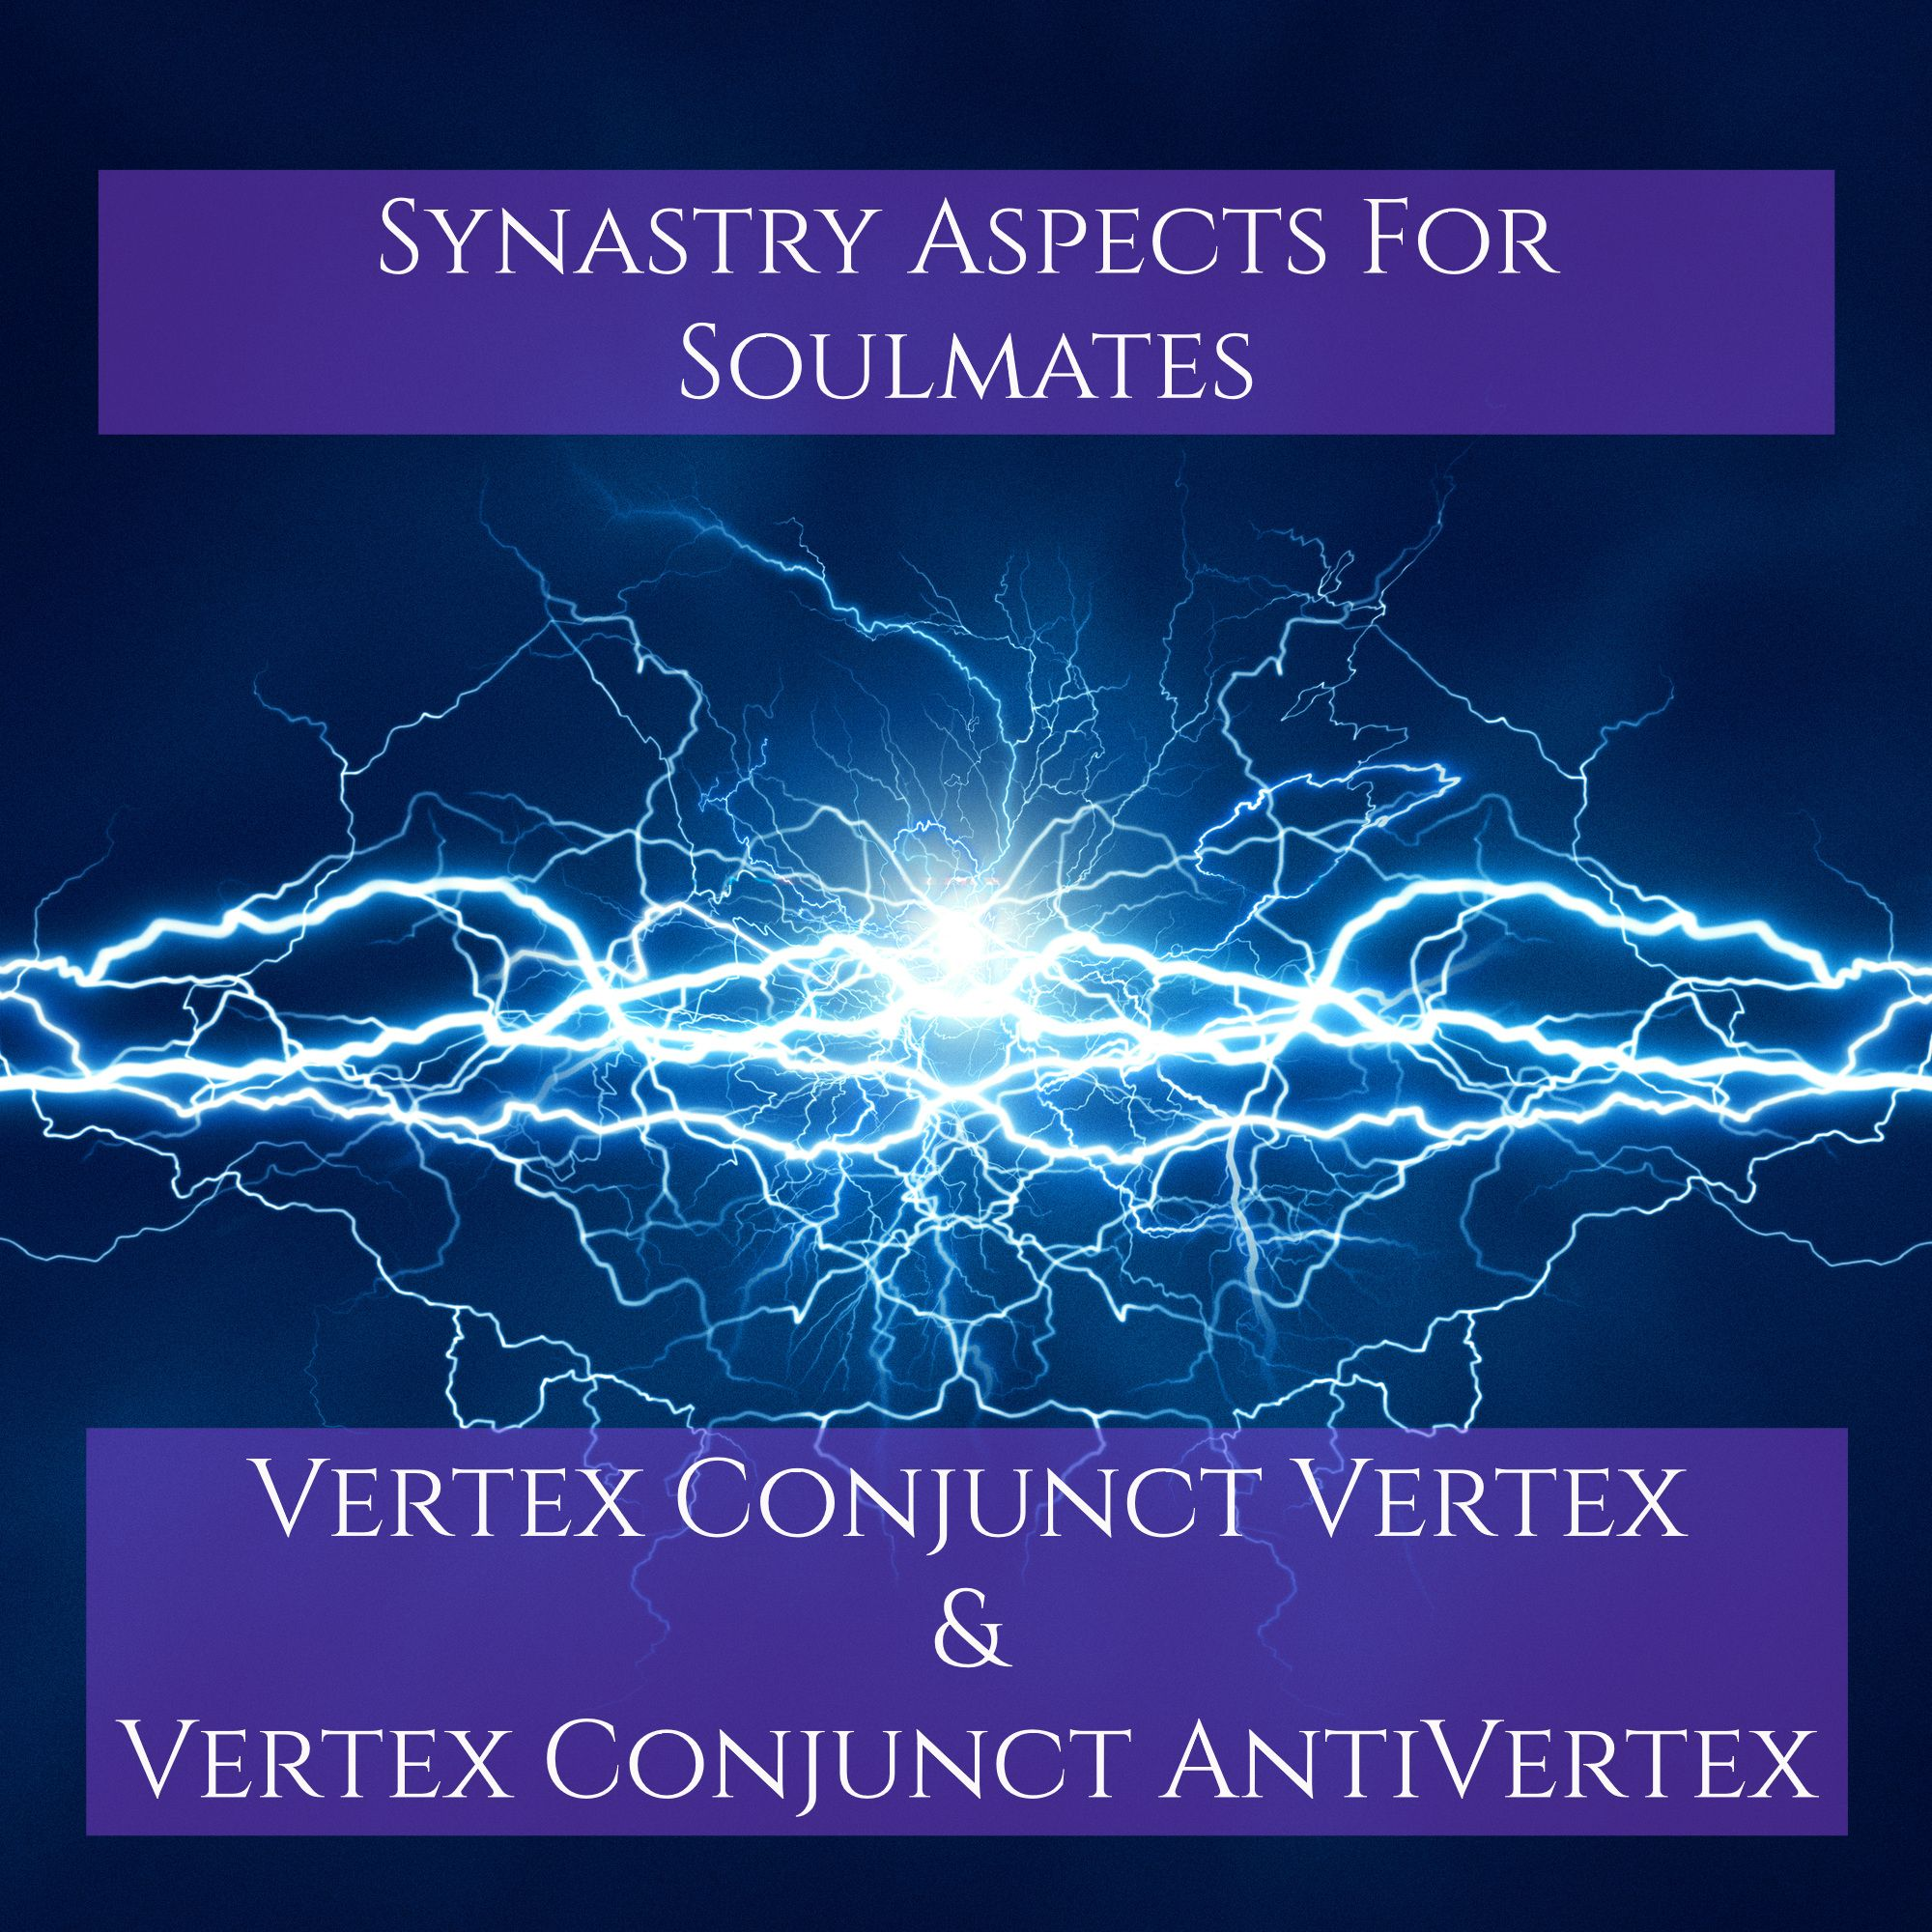 In this synastry series I'm teaching about some of the most